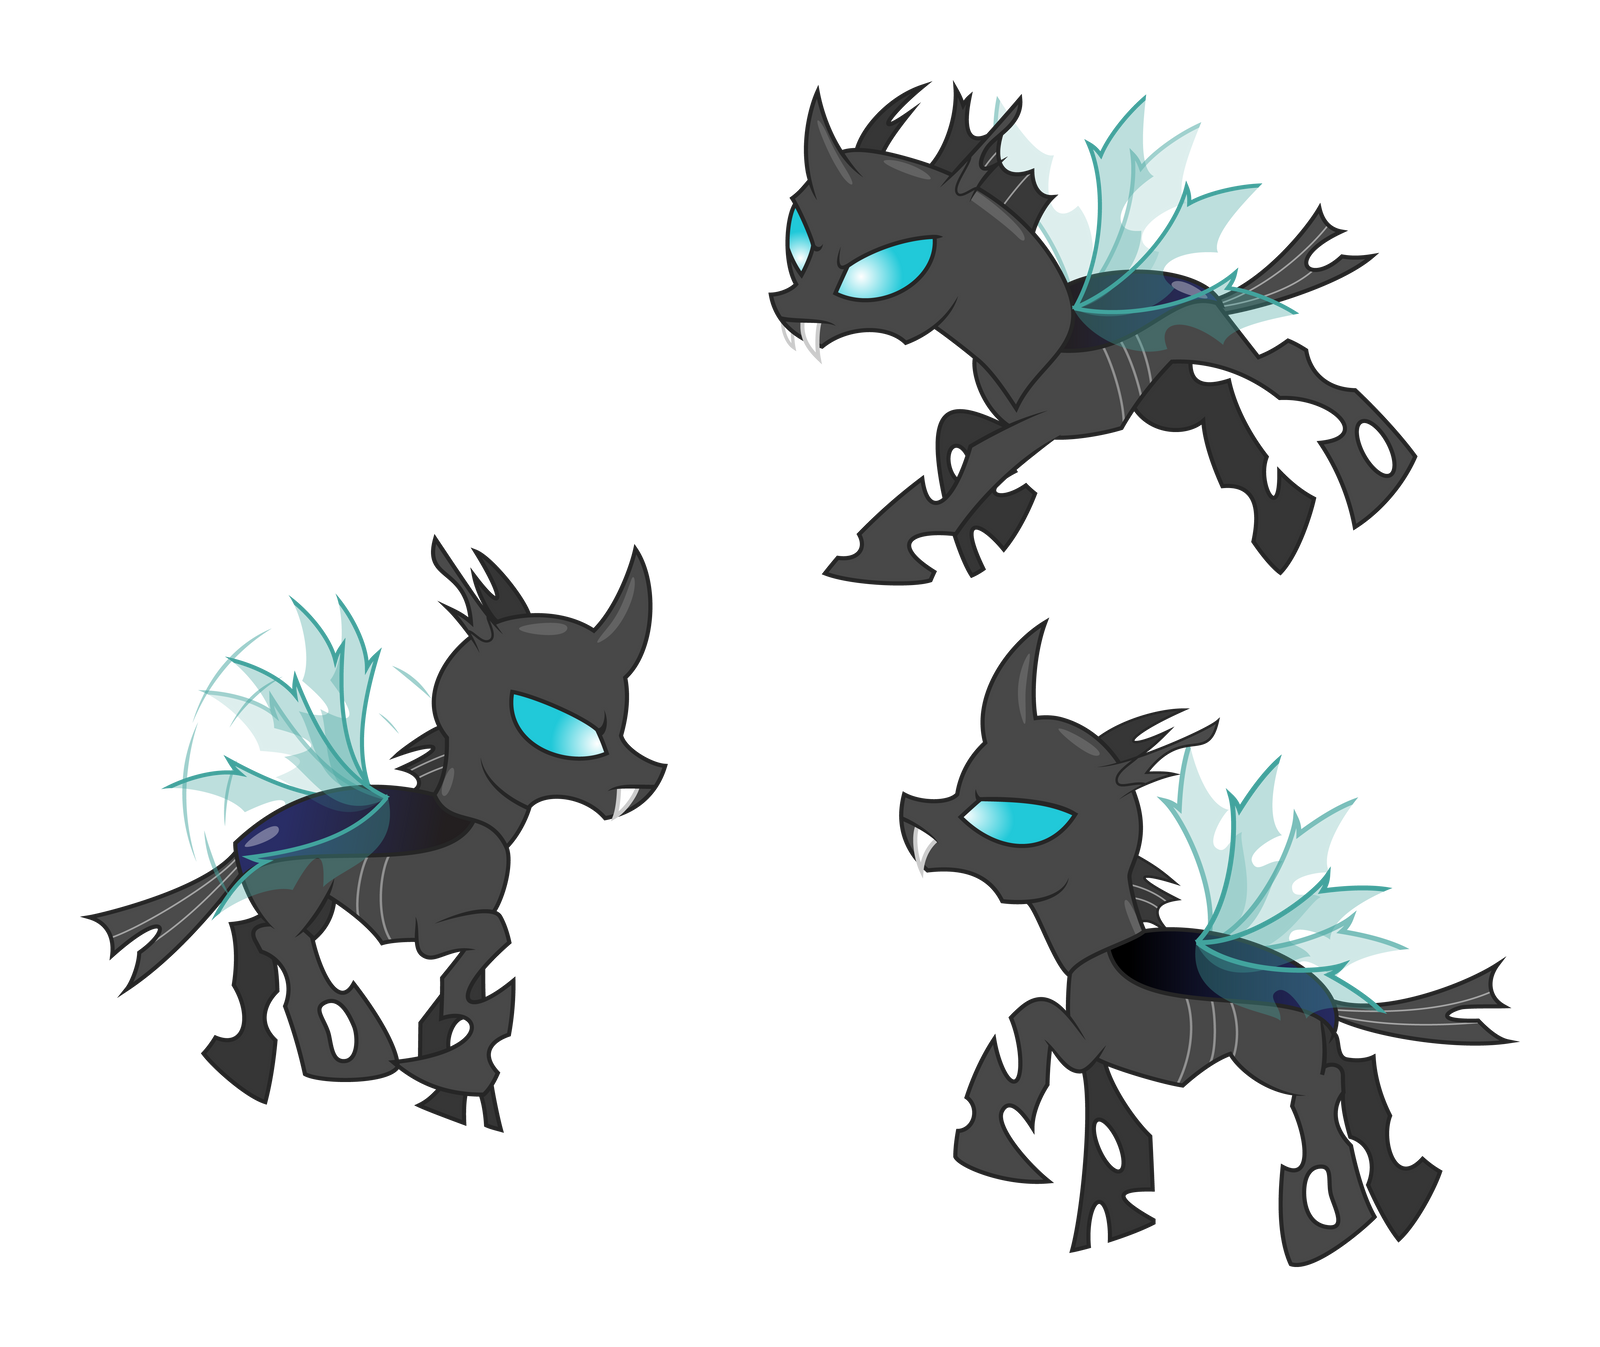 Changeling Group